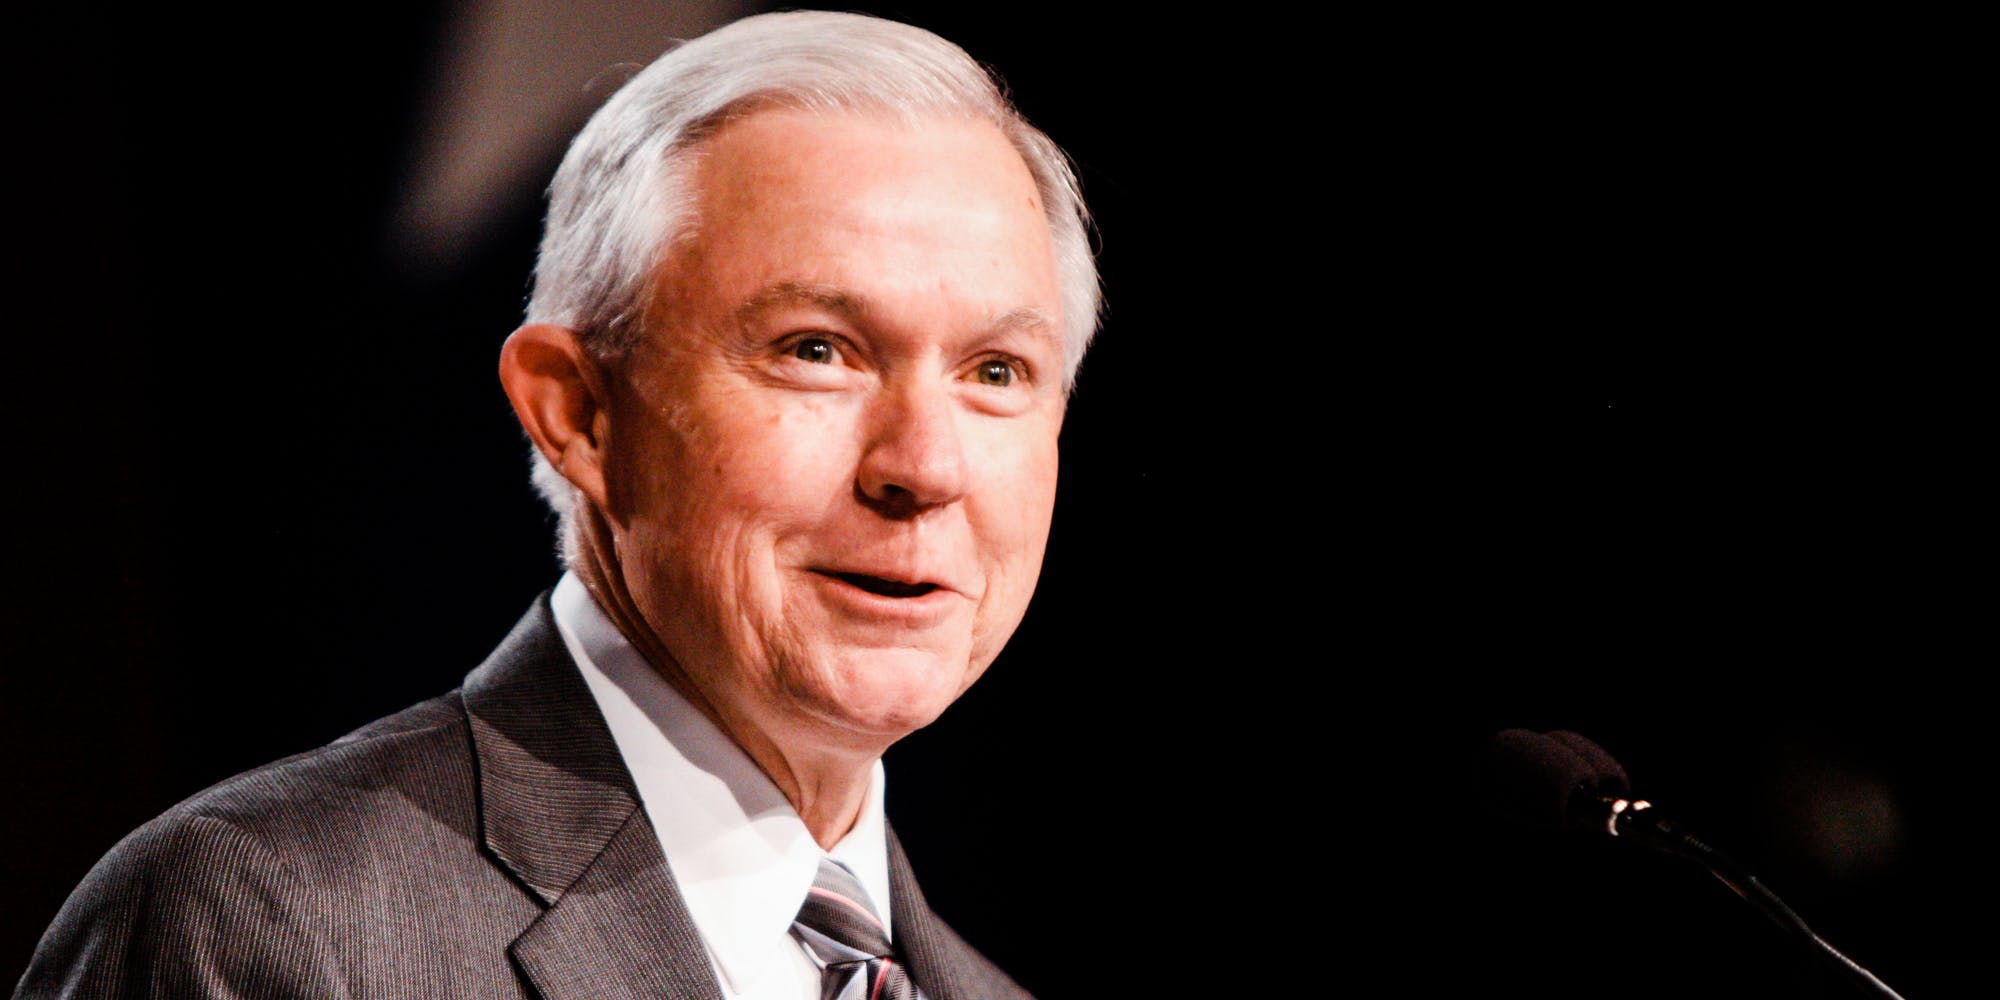 Jeff Sessions Barely Saves His Own Job By Firing FBI Deputy Director Andrew McCabe